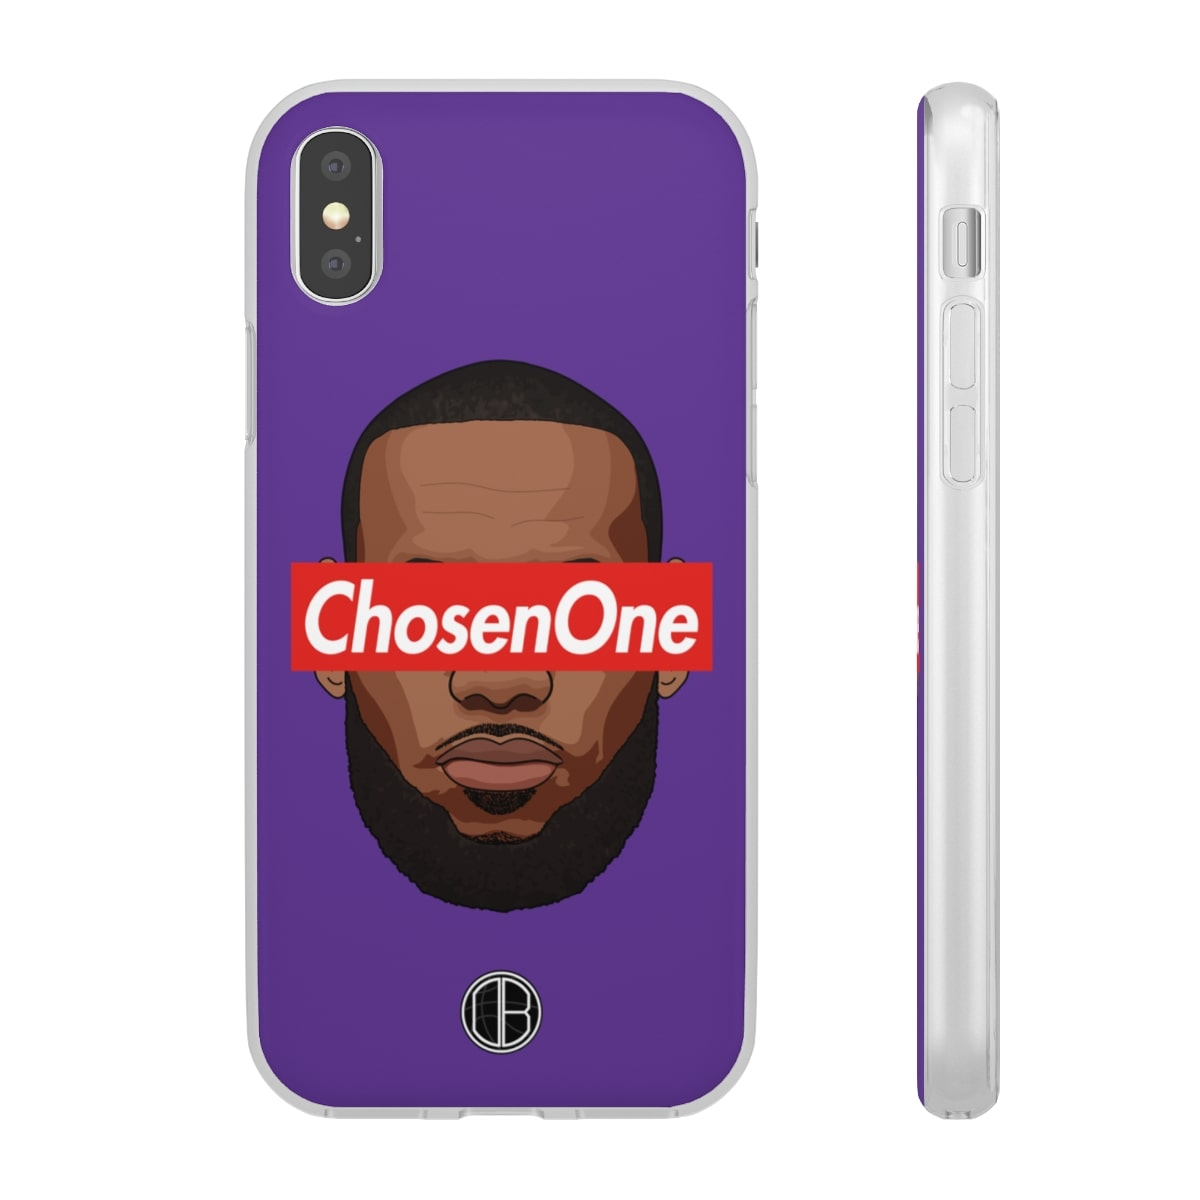 Lebron_James_Phone_Cases_ChosenOne_Los_Angeles_Lakers_iphoneX